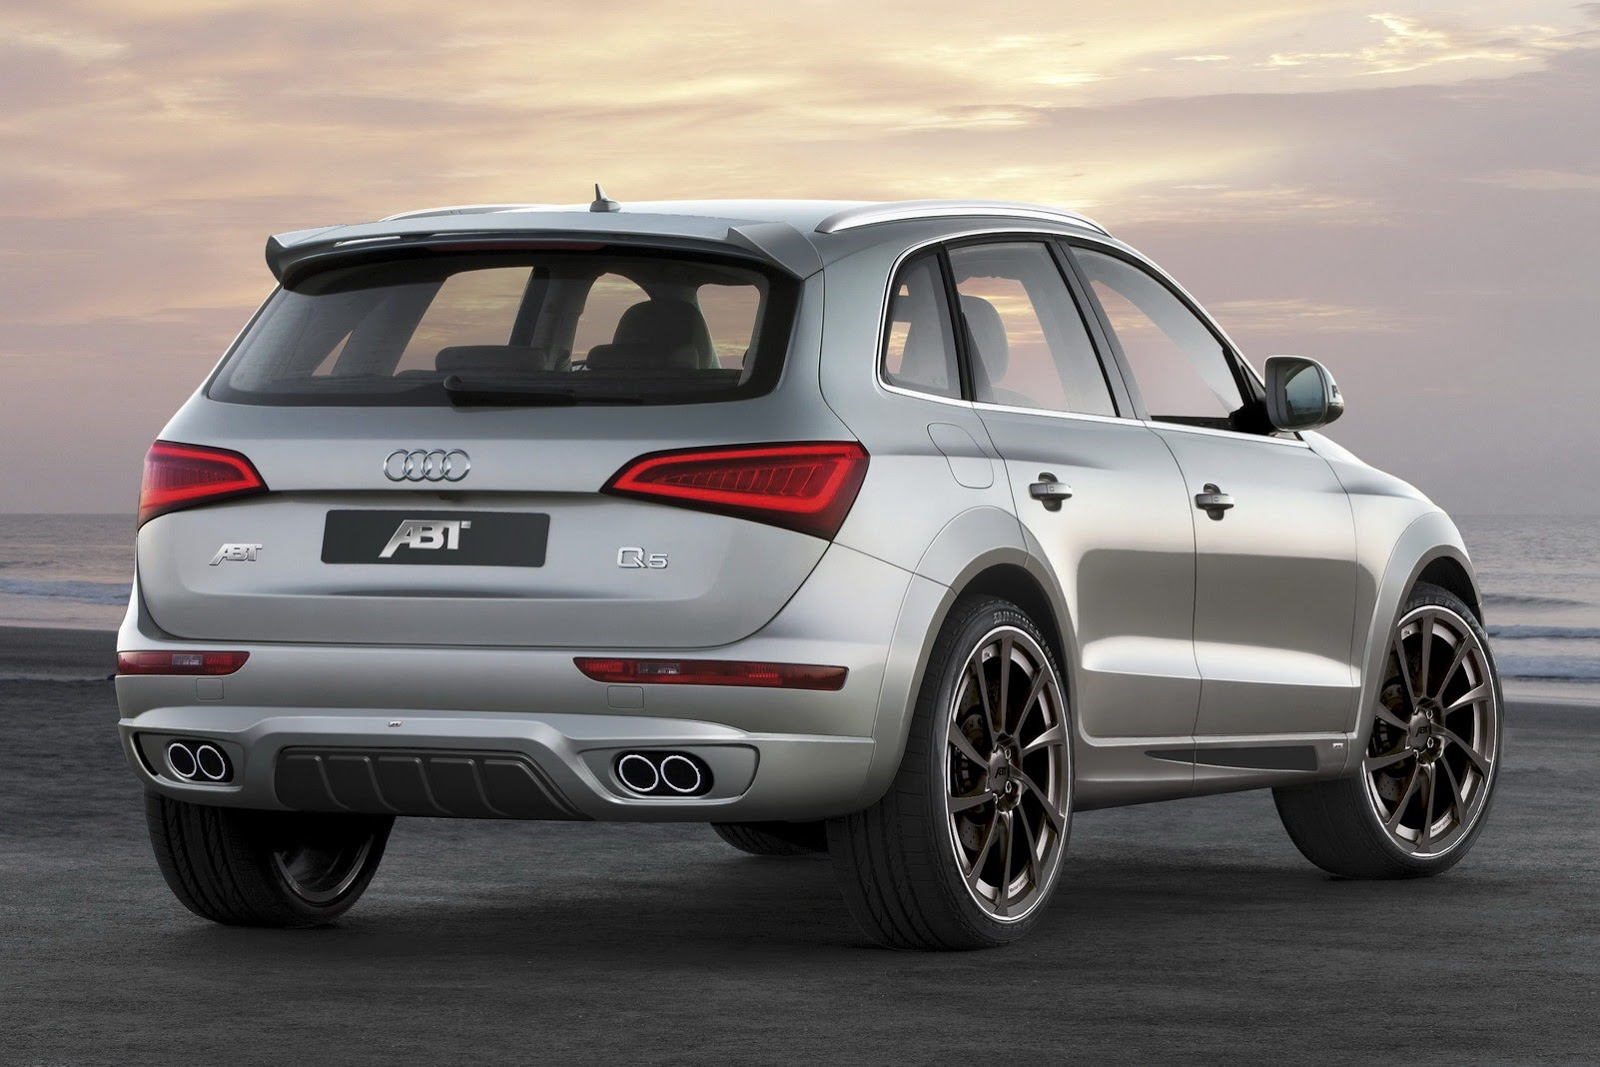 And Details 2013 Audi Q5 By Abt From Story 2013 Audi Q5 Facelift